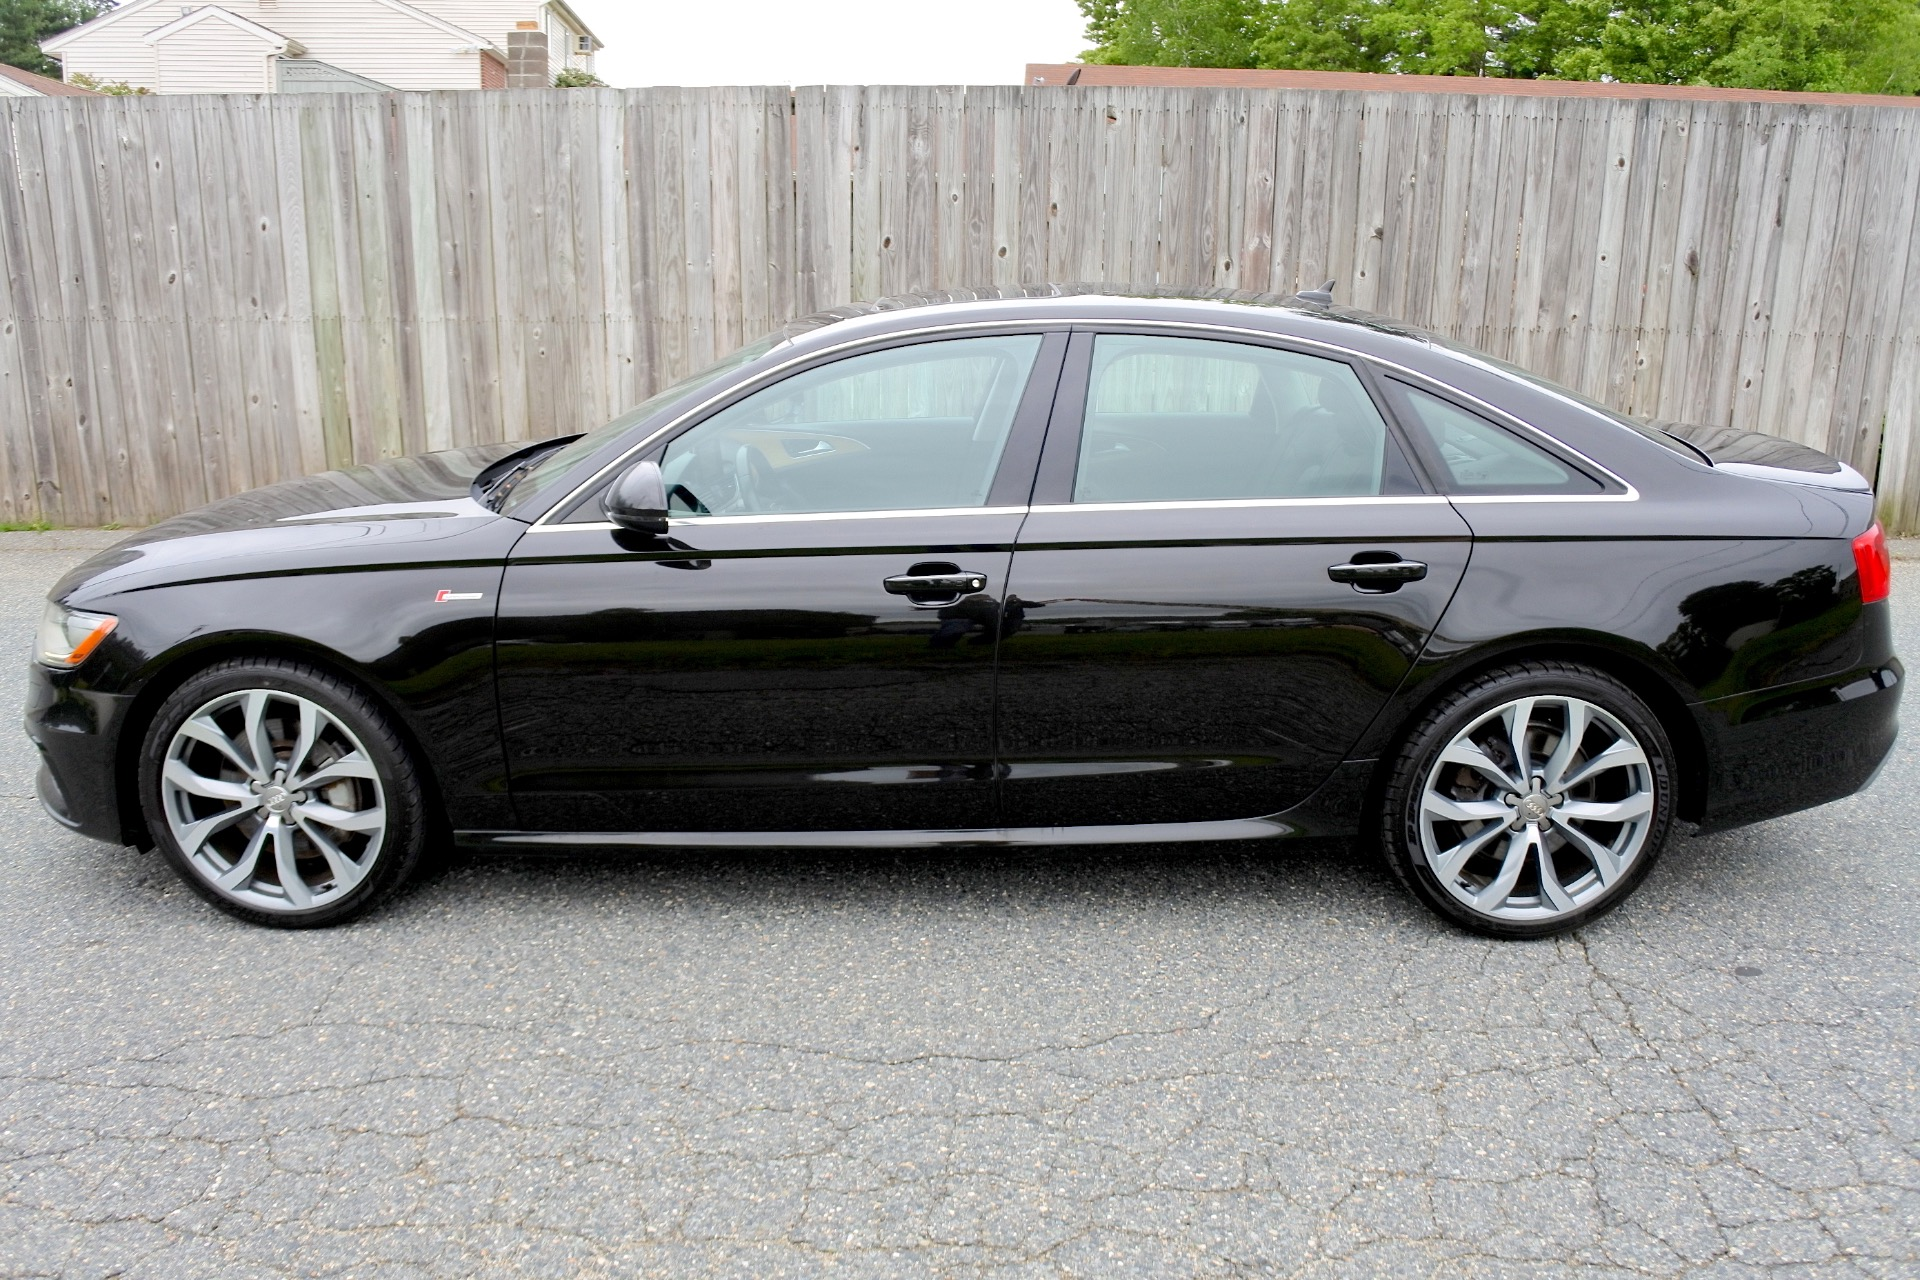 Used 2013 Audi A6 4dr Sdn quattro 3.0T Prestige Used 2013 Audi A6 4dr Sdn quattro 3.0T Prestige for sale  at Metro West Motorcars LLC in Shrewsbury MA 2